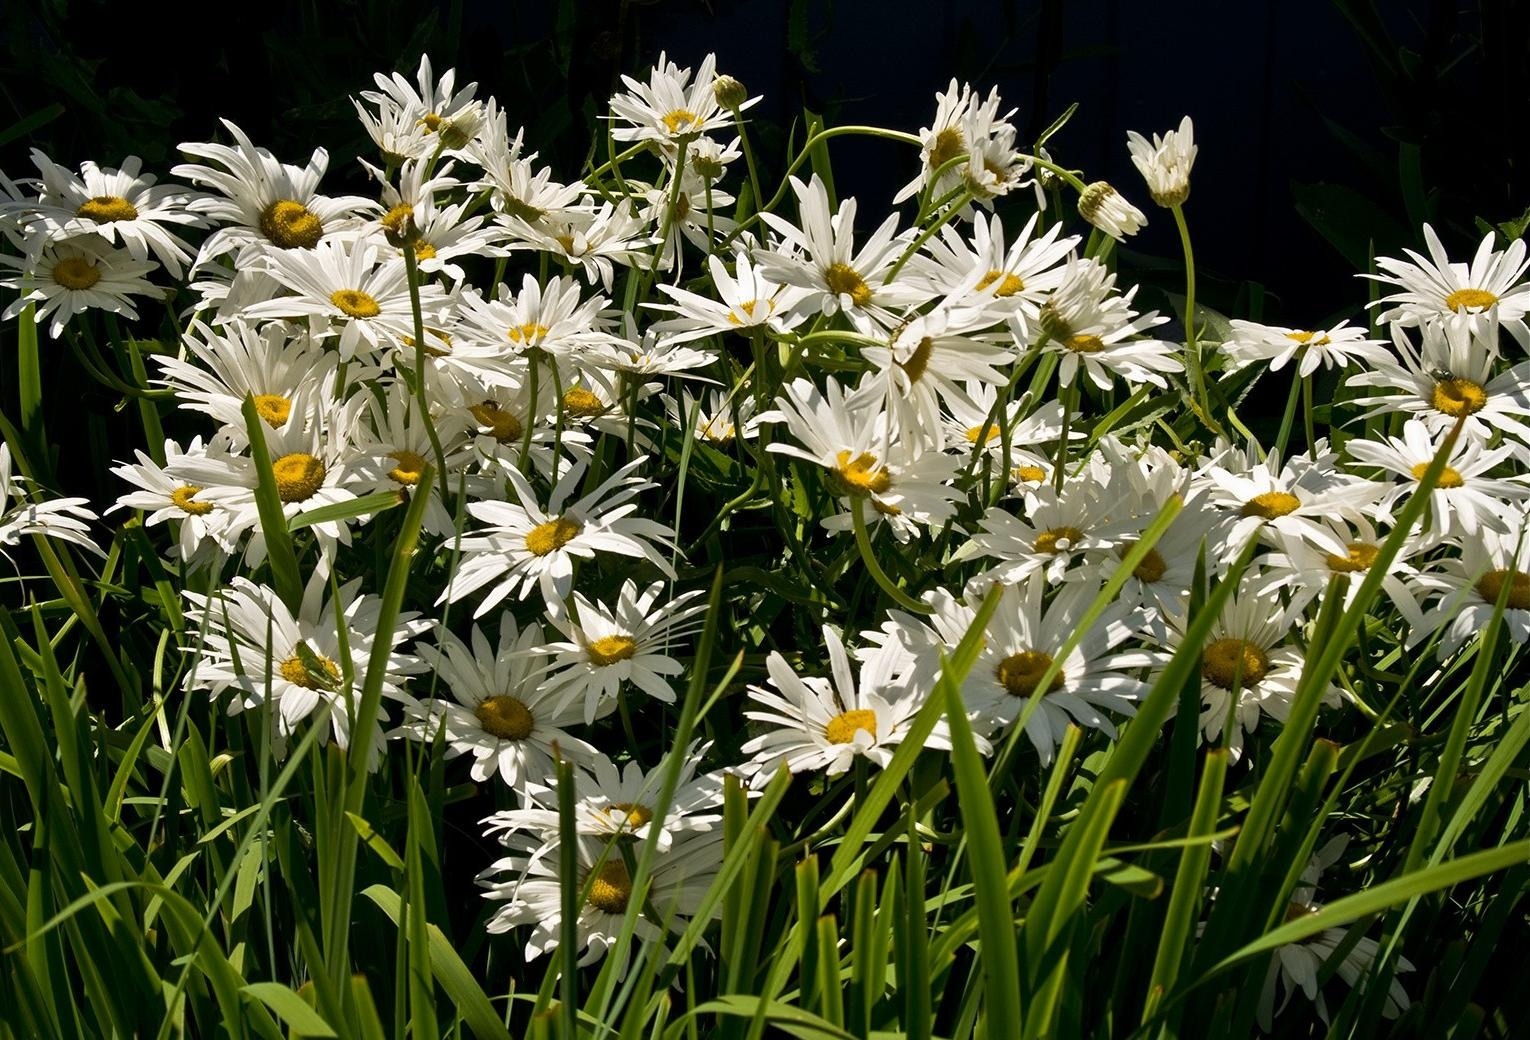 115768 download wallpaper Flowers, Camomile, Grass, Greens, Shine, Light screensavers and pictures for free